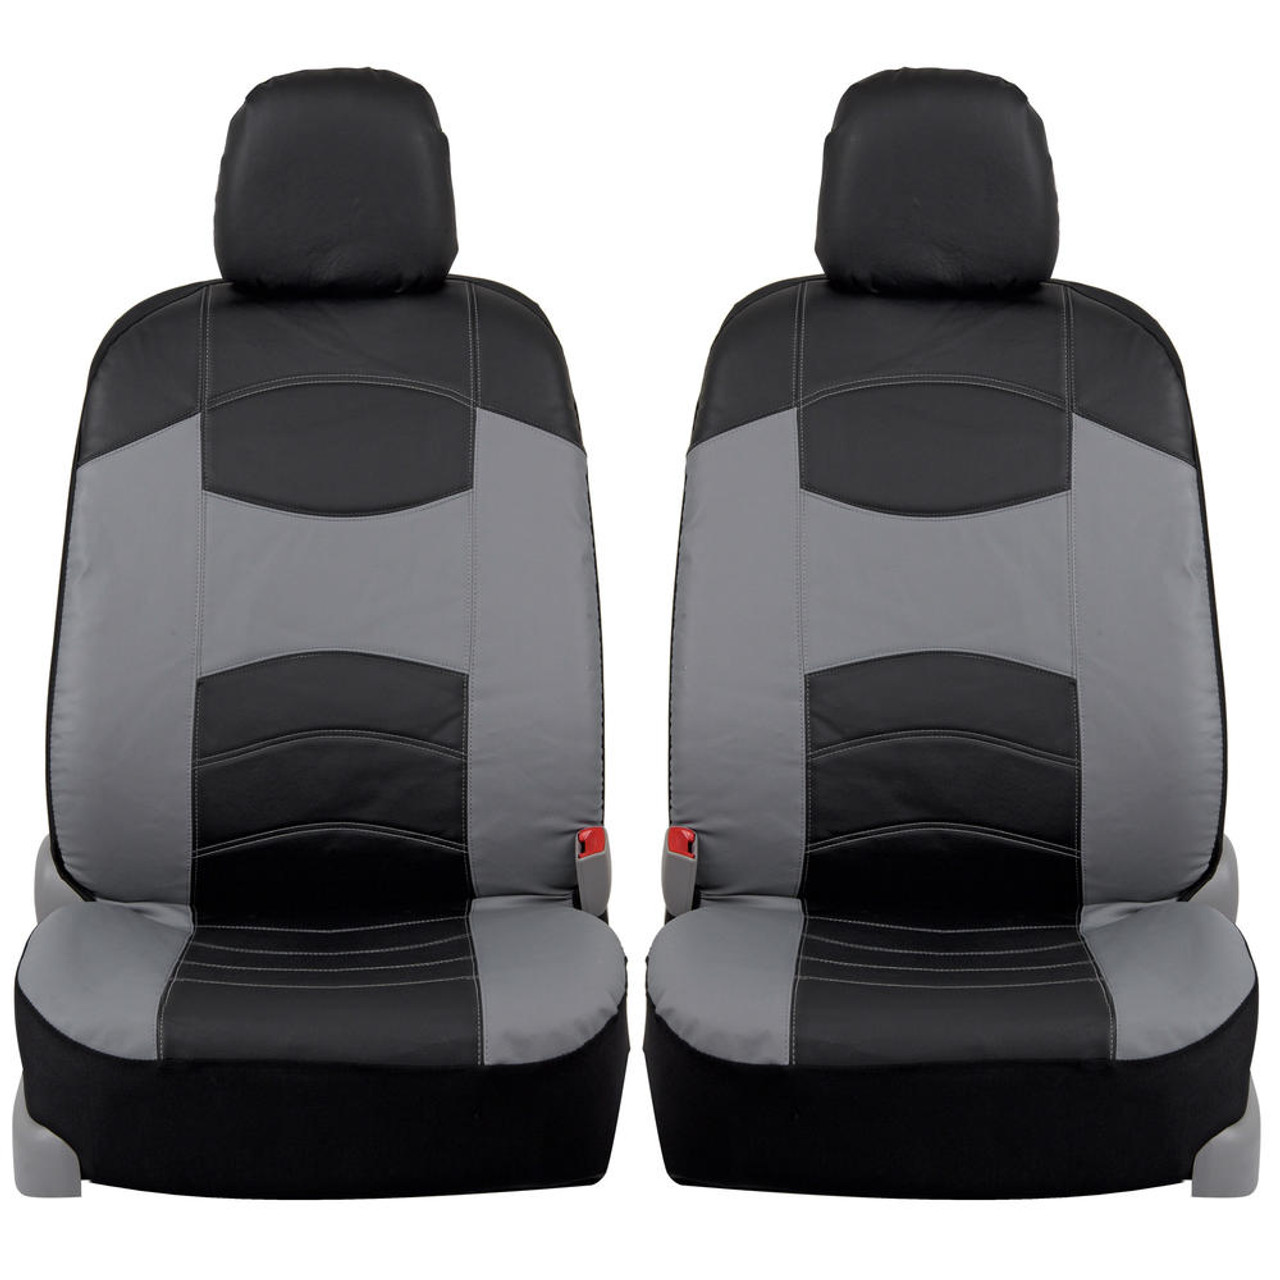 FORD FIESTA VAN 11+ SINGLE HD BLACK SEAT COVERS PROTECTORS CAR SEATS